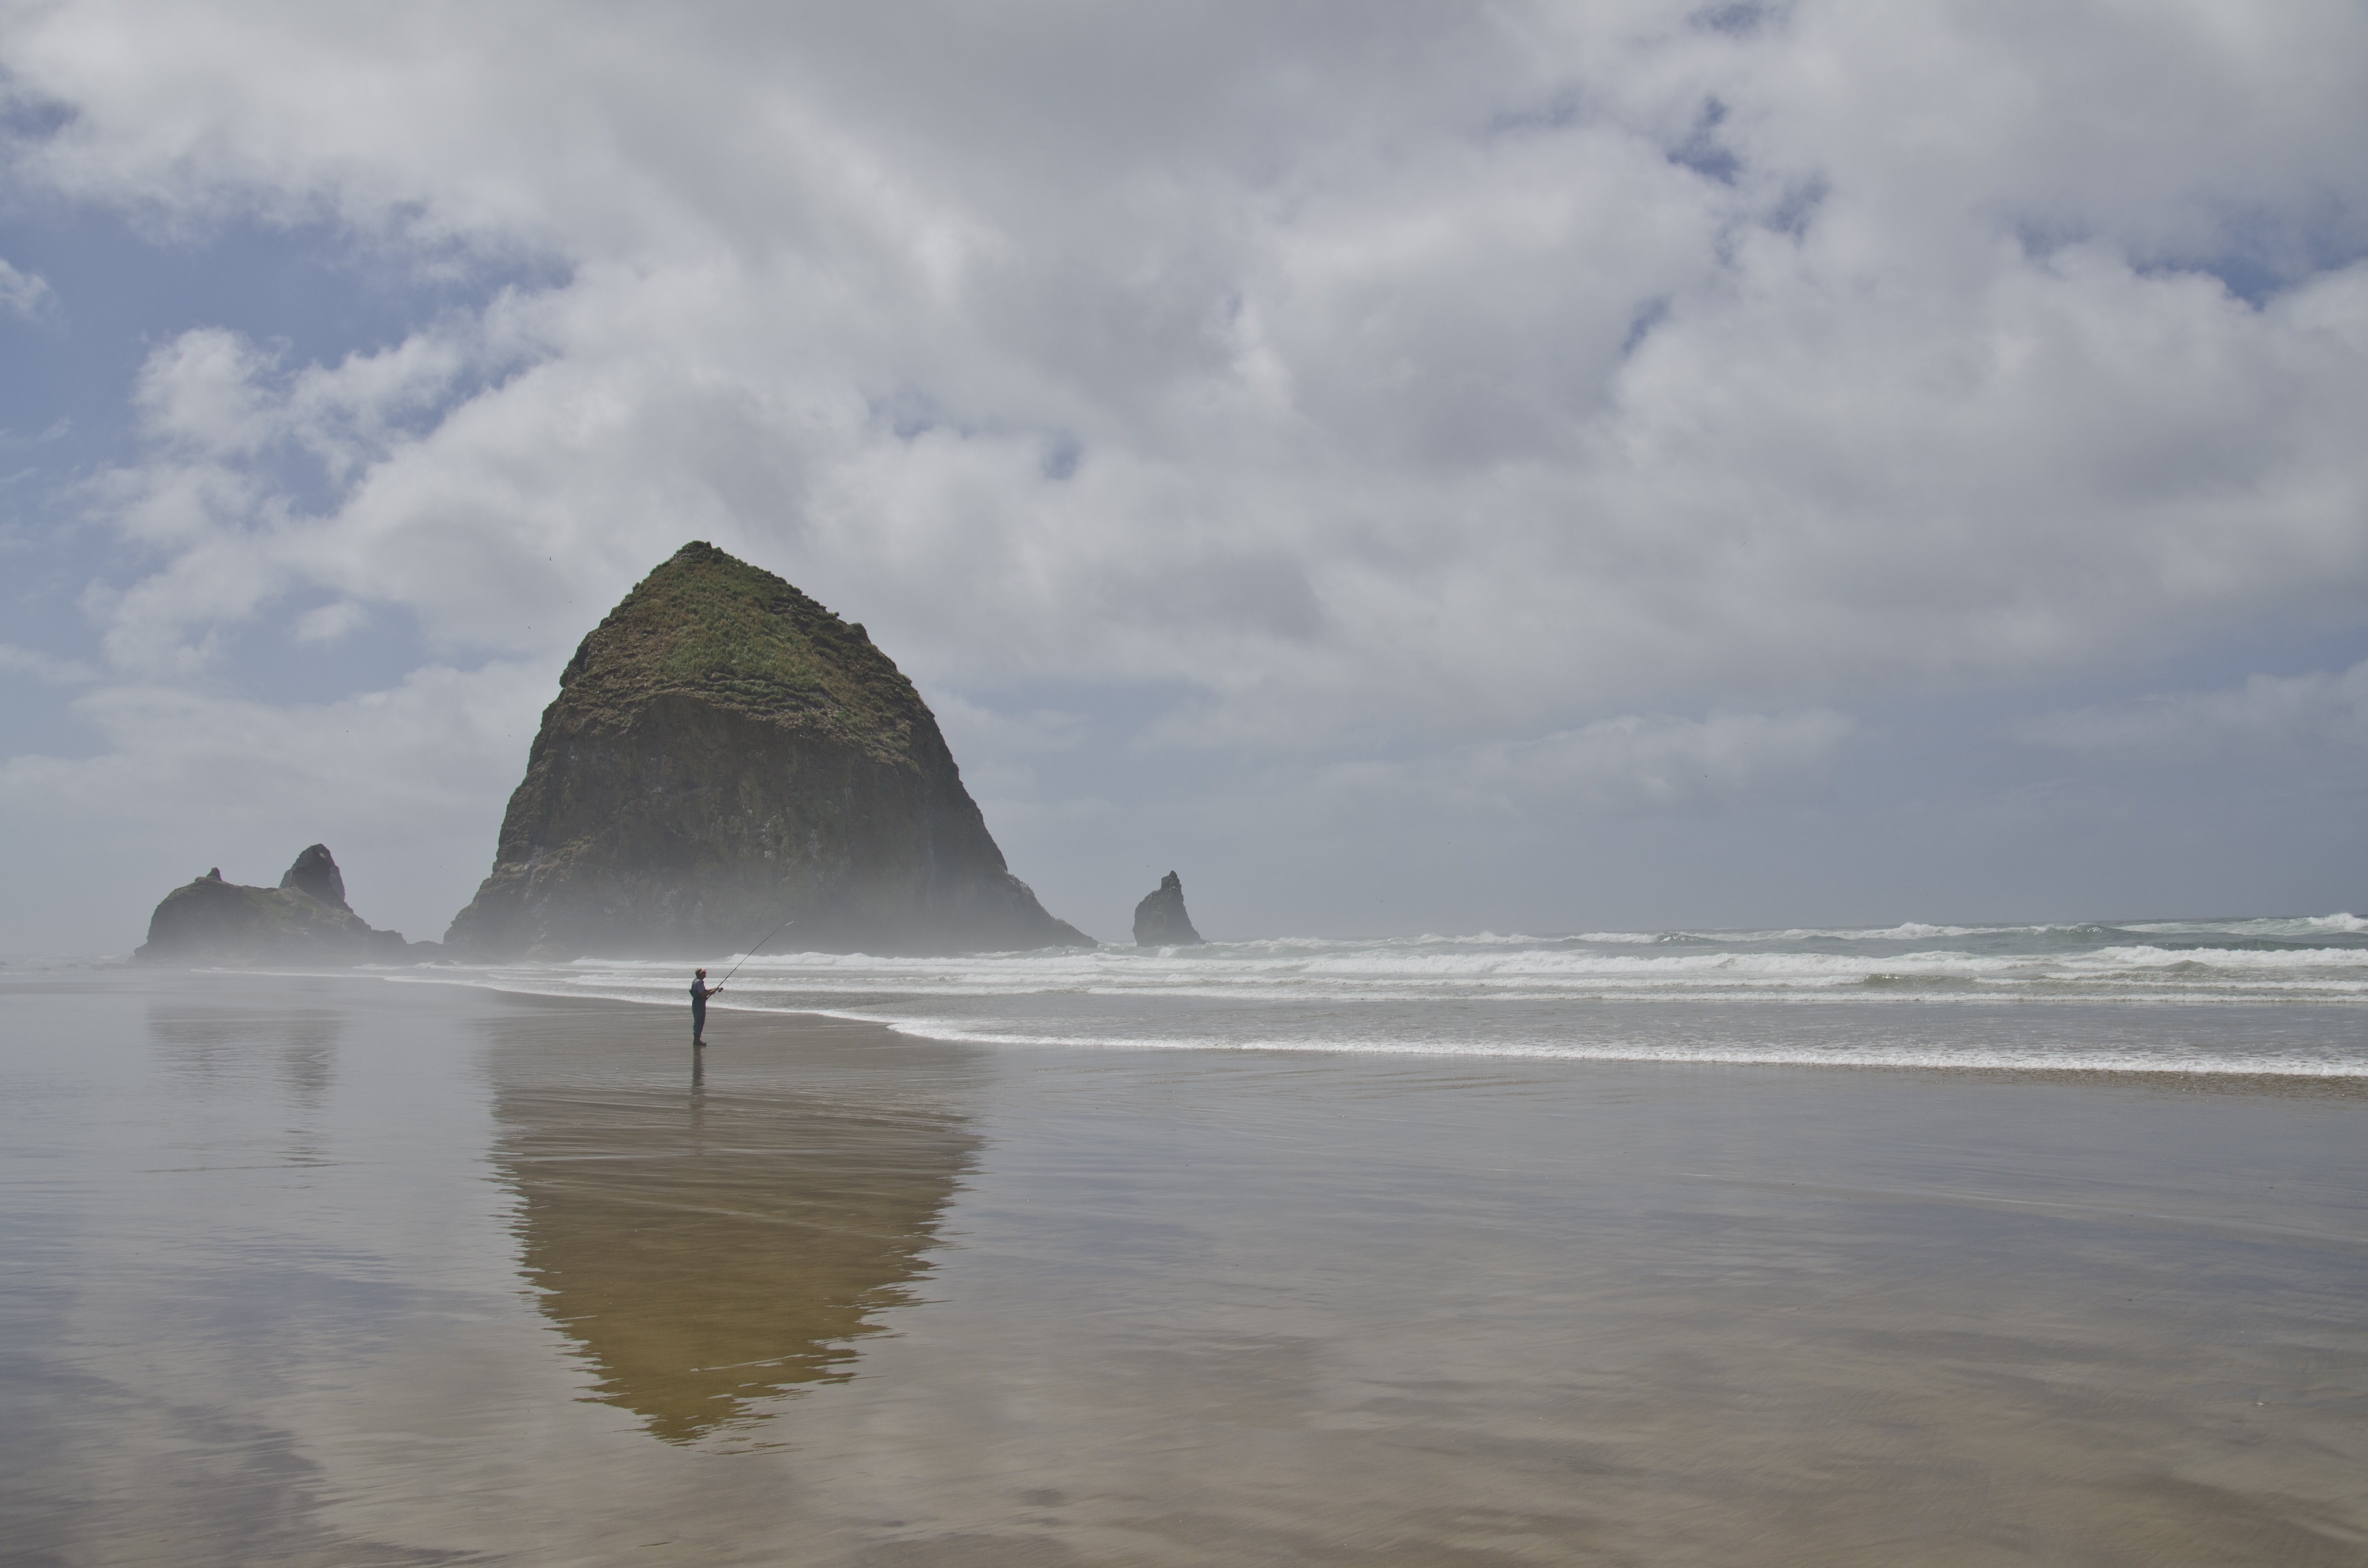 Person fishing on the wet sand beach with the big rock formation in background at Cannon Beach